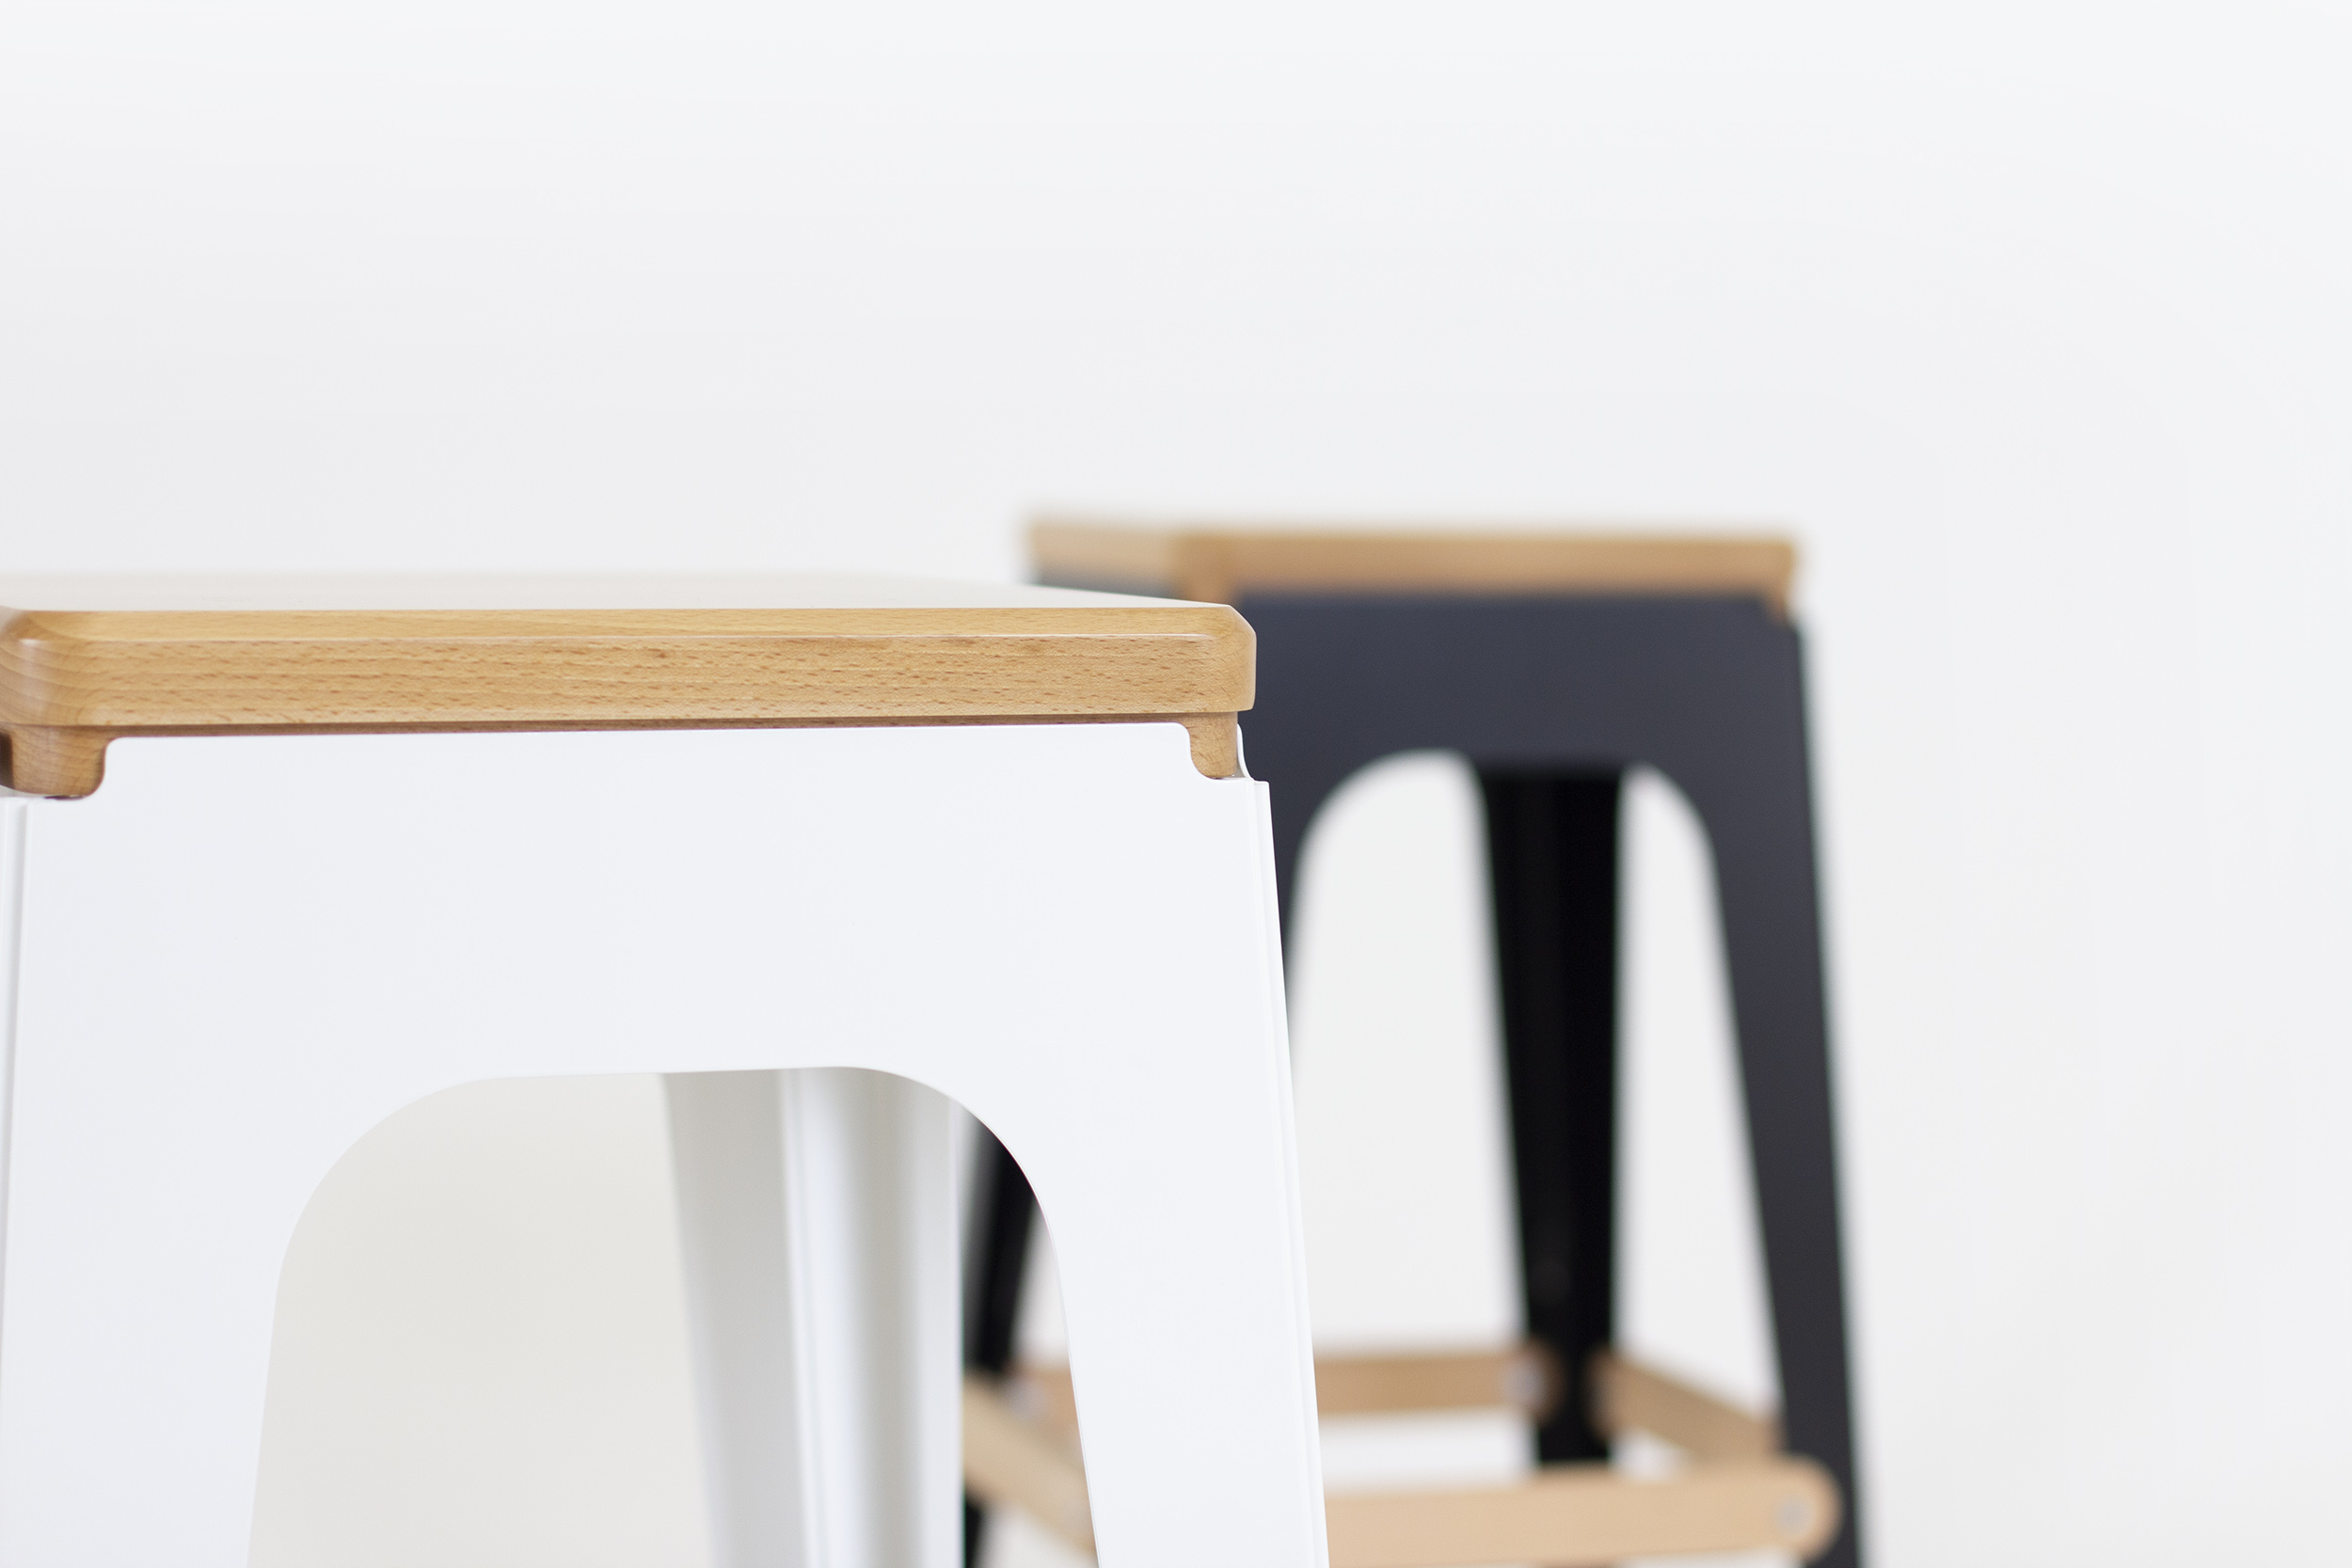 OULA bar stool by FIGURON. Design by Alexander Zhukovsky.